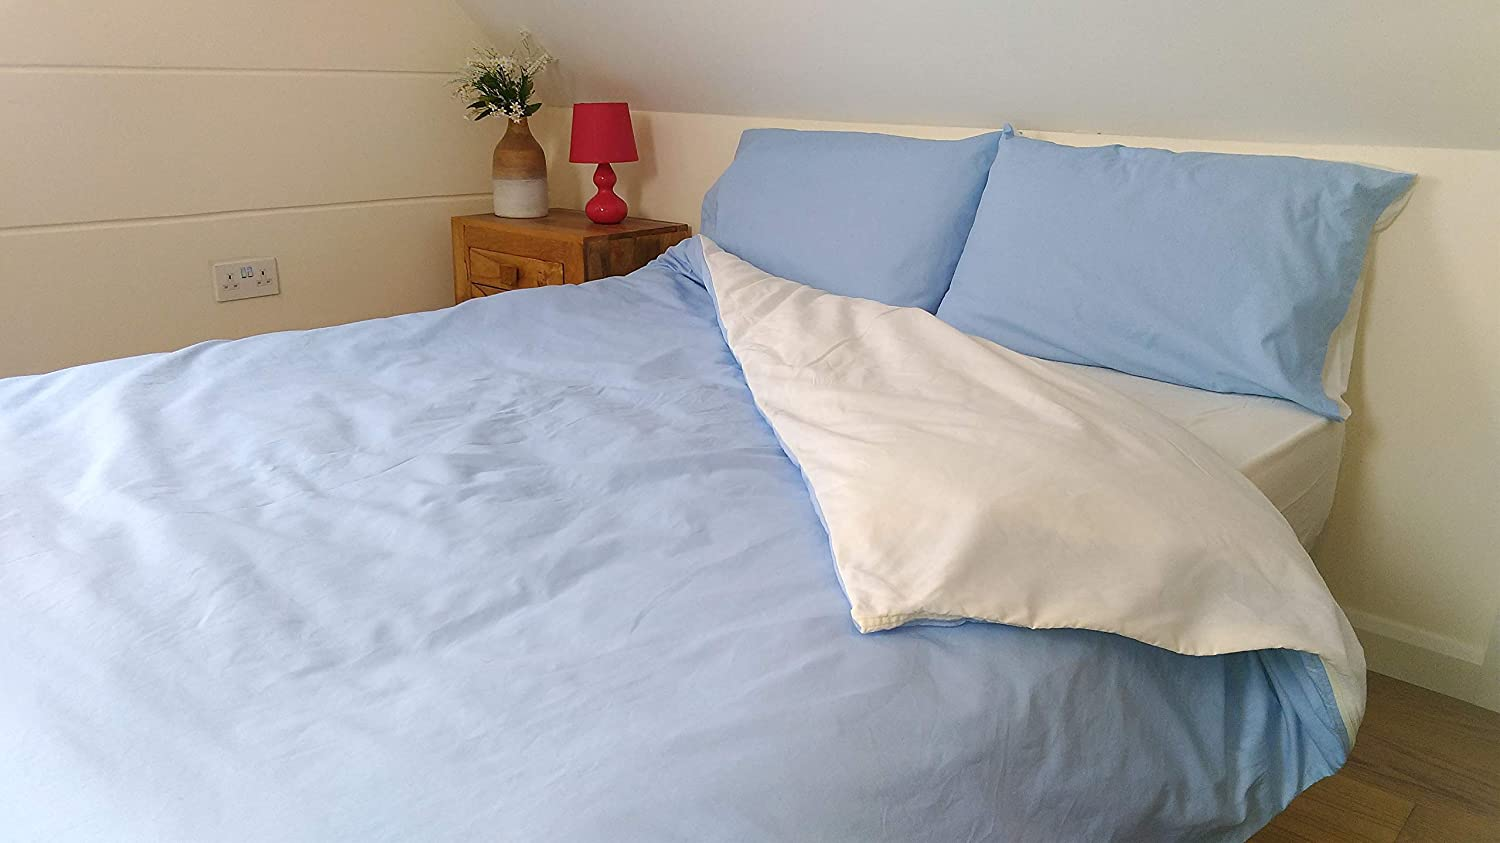 Double Duvet Cover With Continuous Zip On Three Sides Opens Up